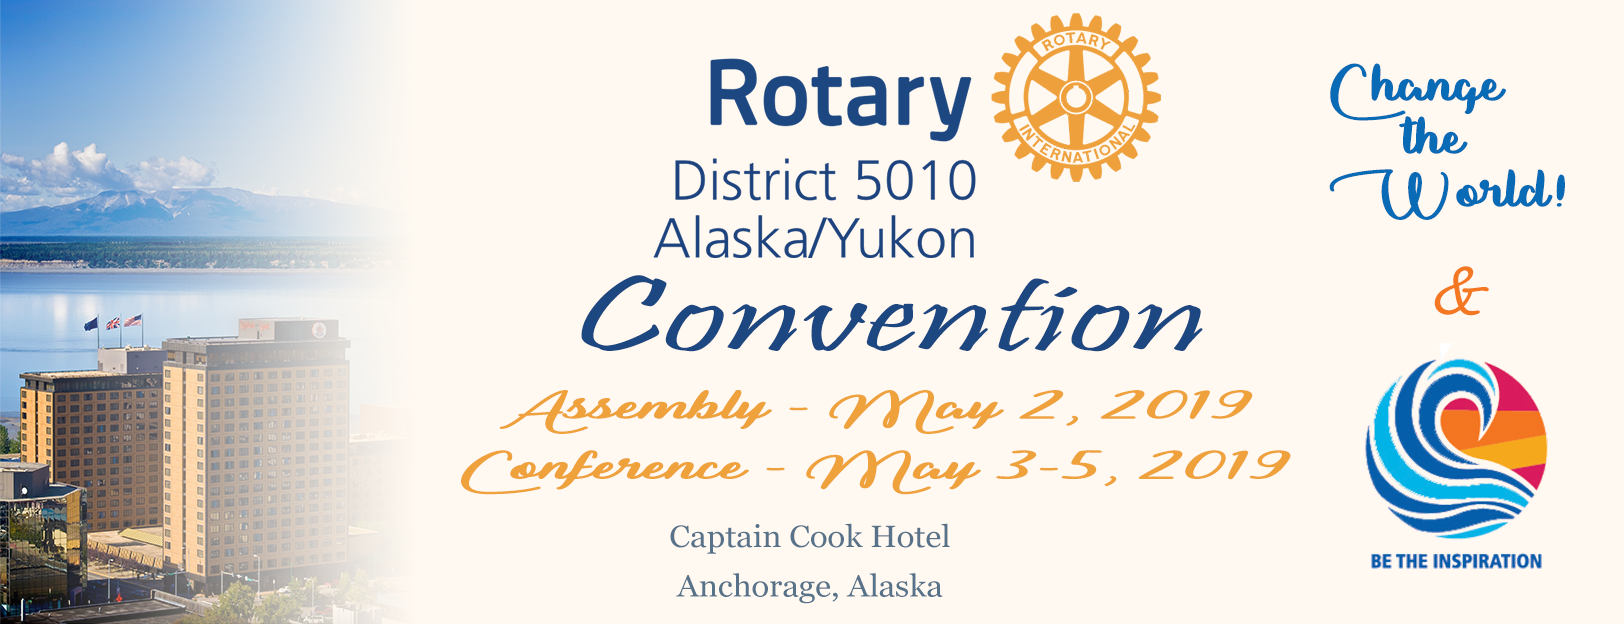 District Conference | Rotary District 5010